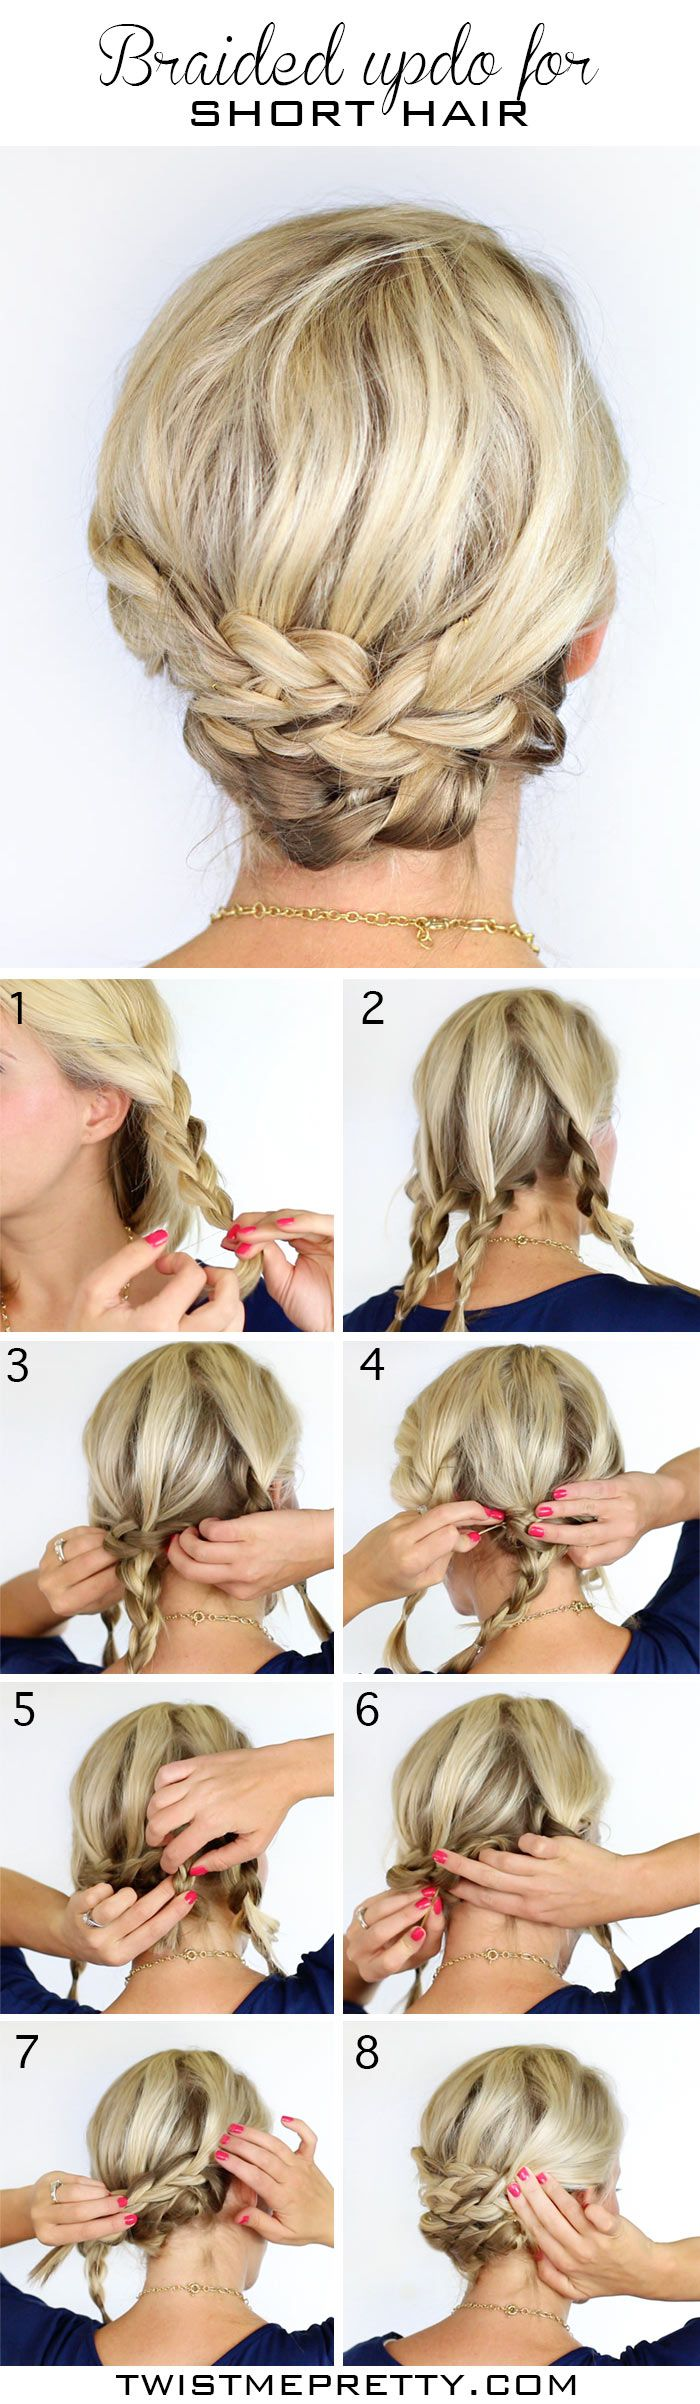 Astounding 1000 Ideas About Braid Short Hair On Pinterest Highlighted Hair Short Hairstyles Gunalazisus